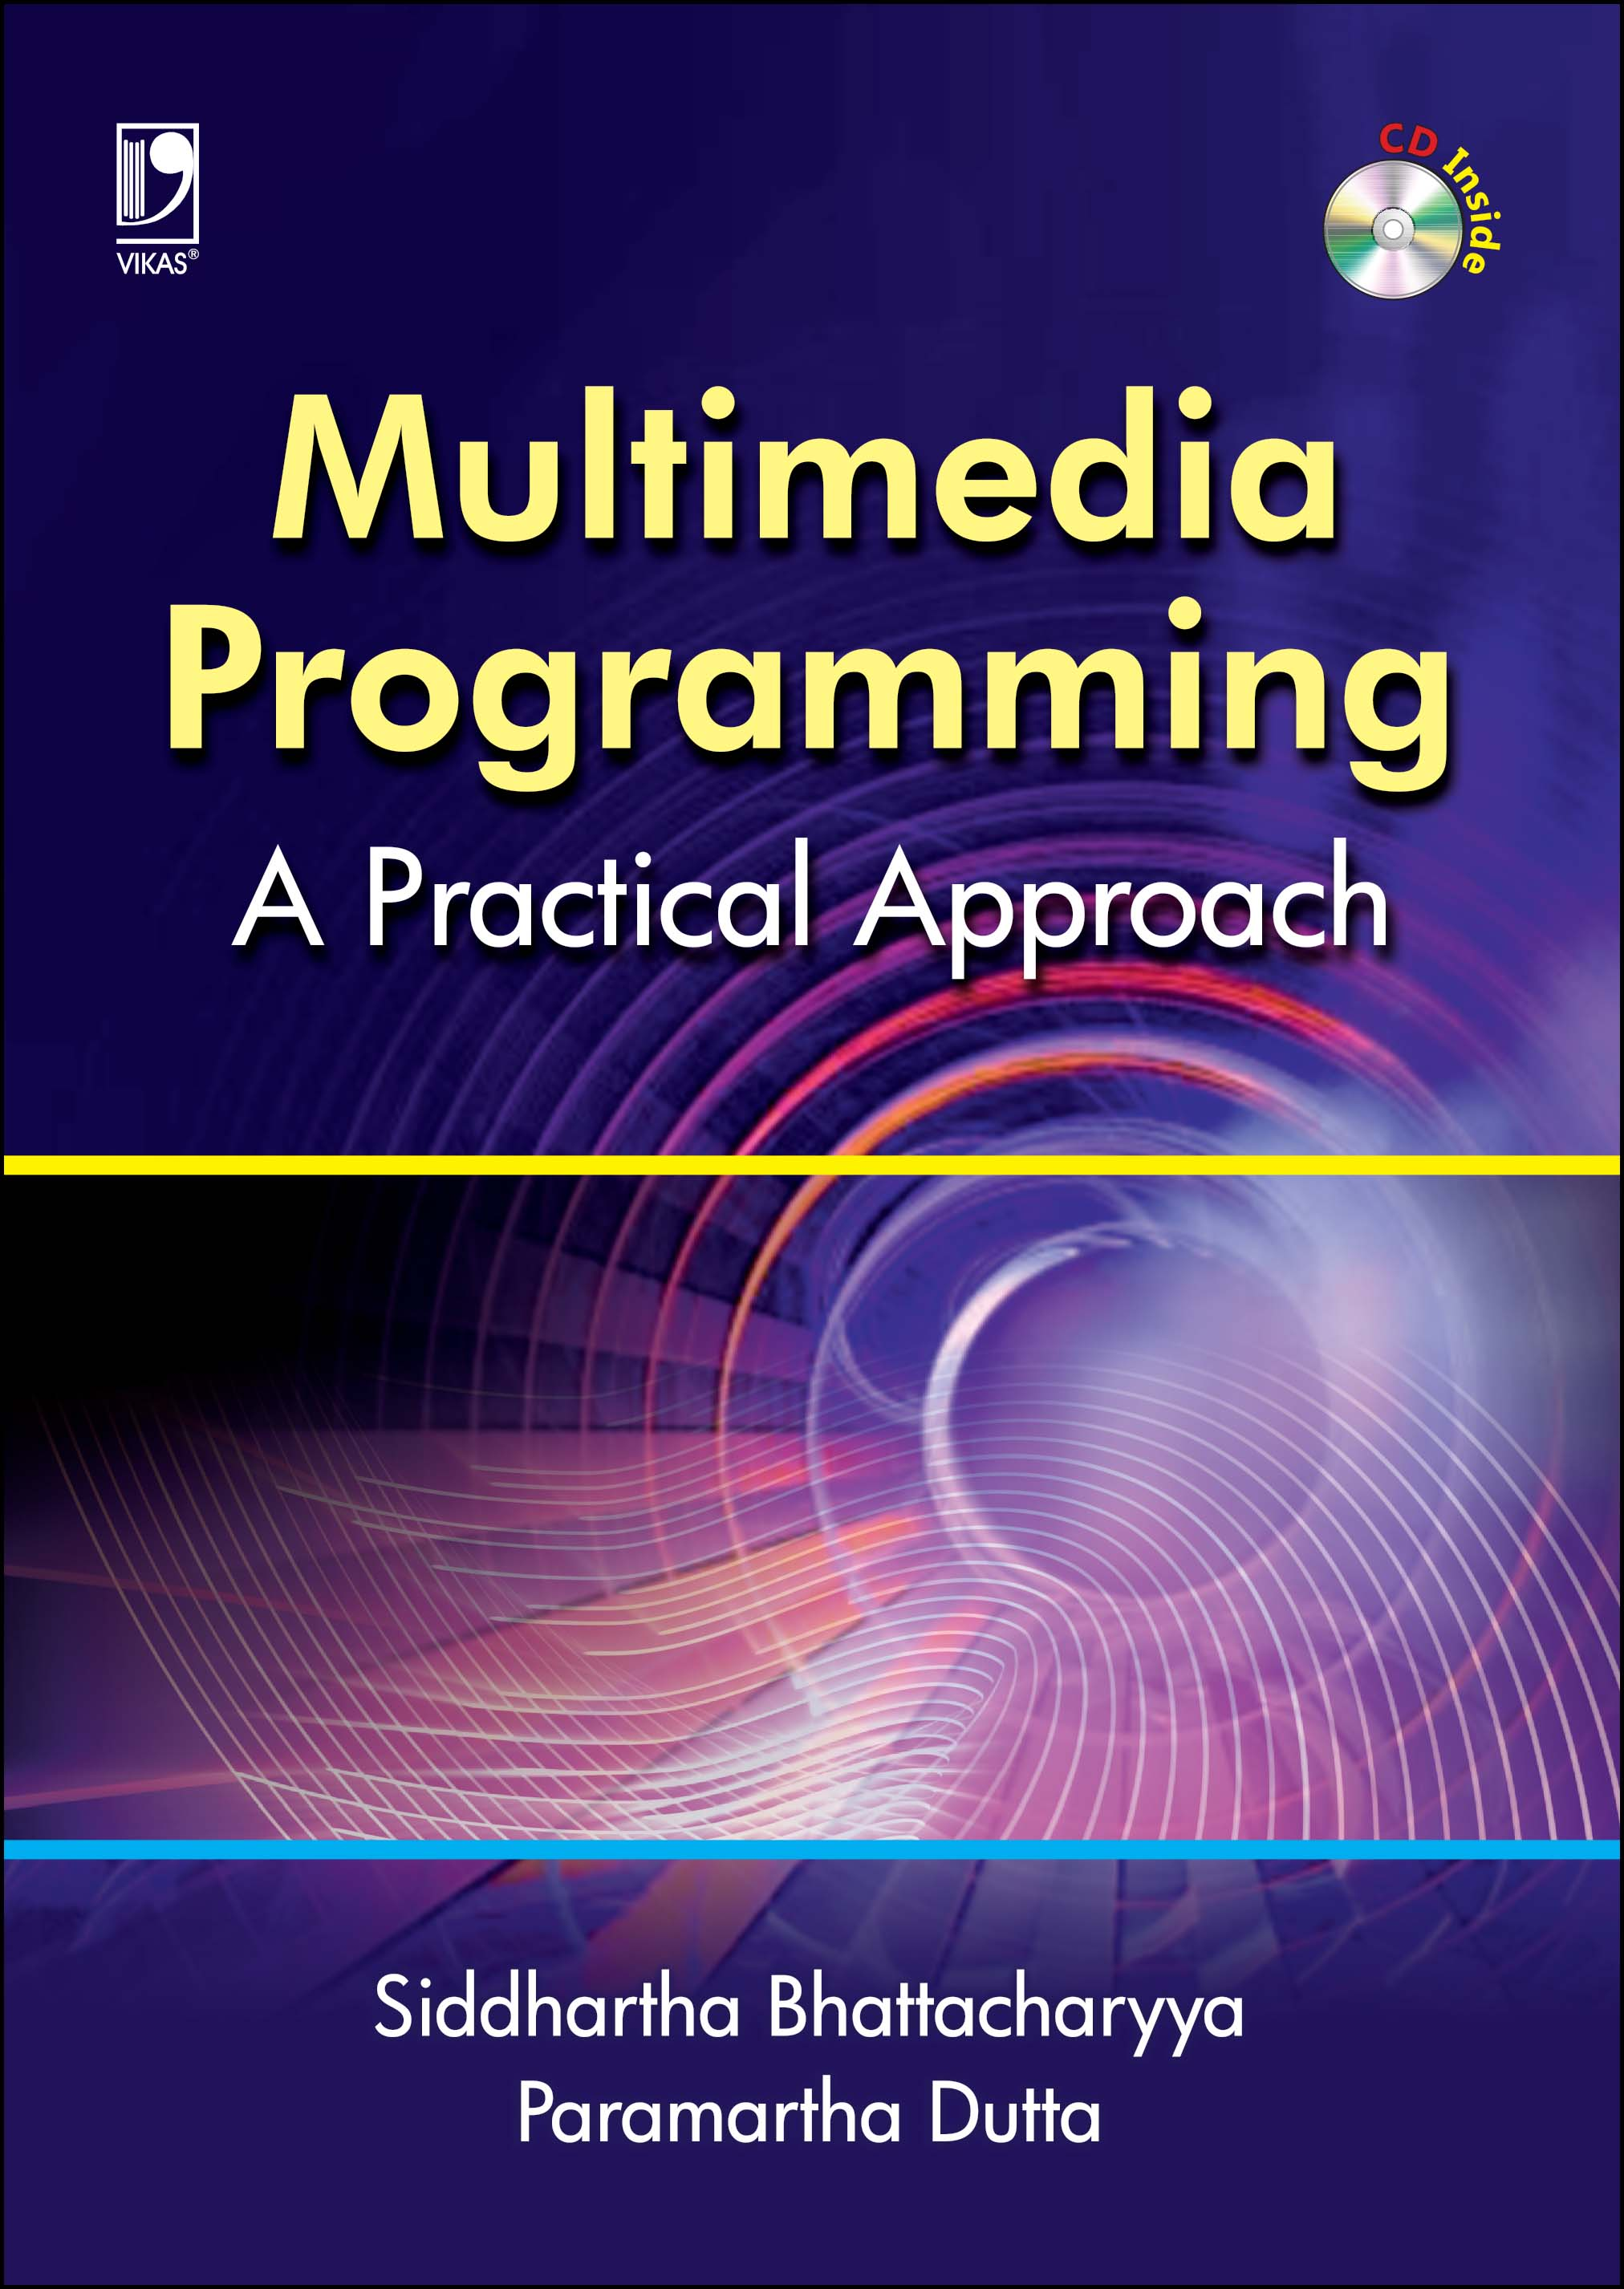 MULTIMEDIA PROGRAMMING: A PRACTICAL APPROACH by  DR. SIDDHARTHA BHATTACHARYYA